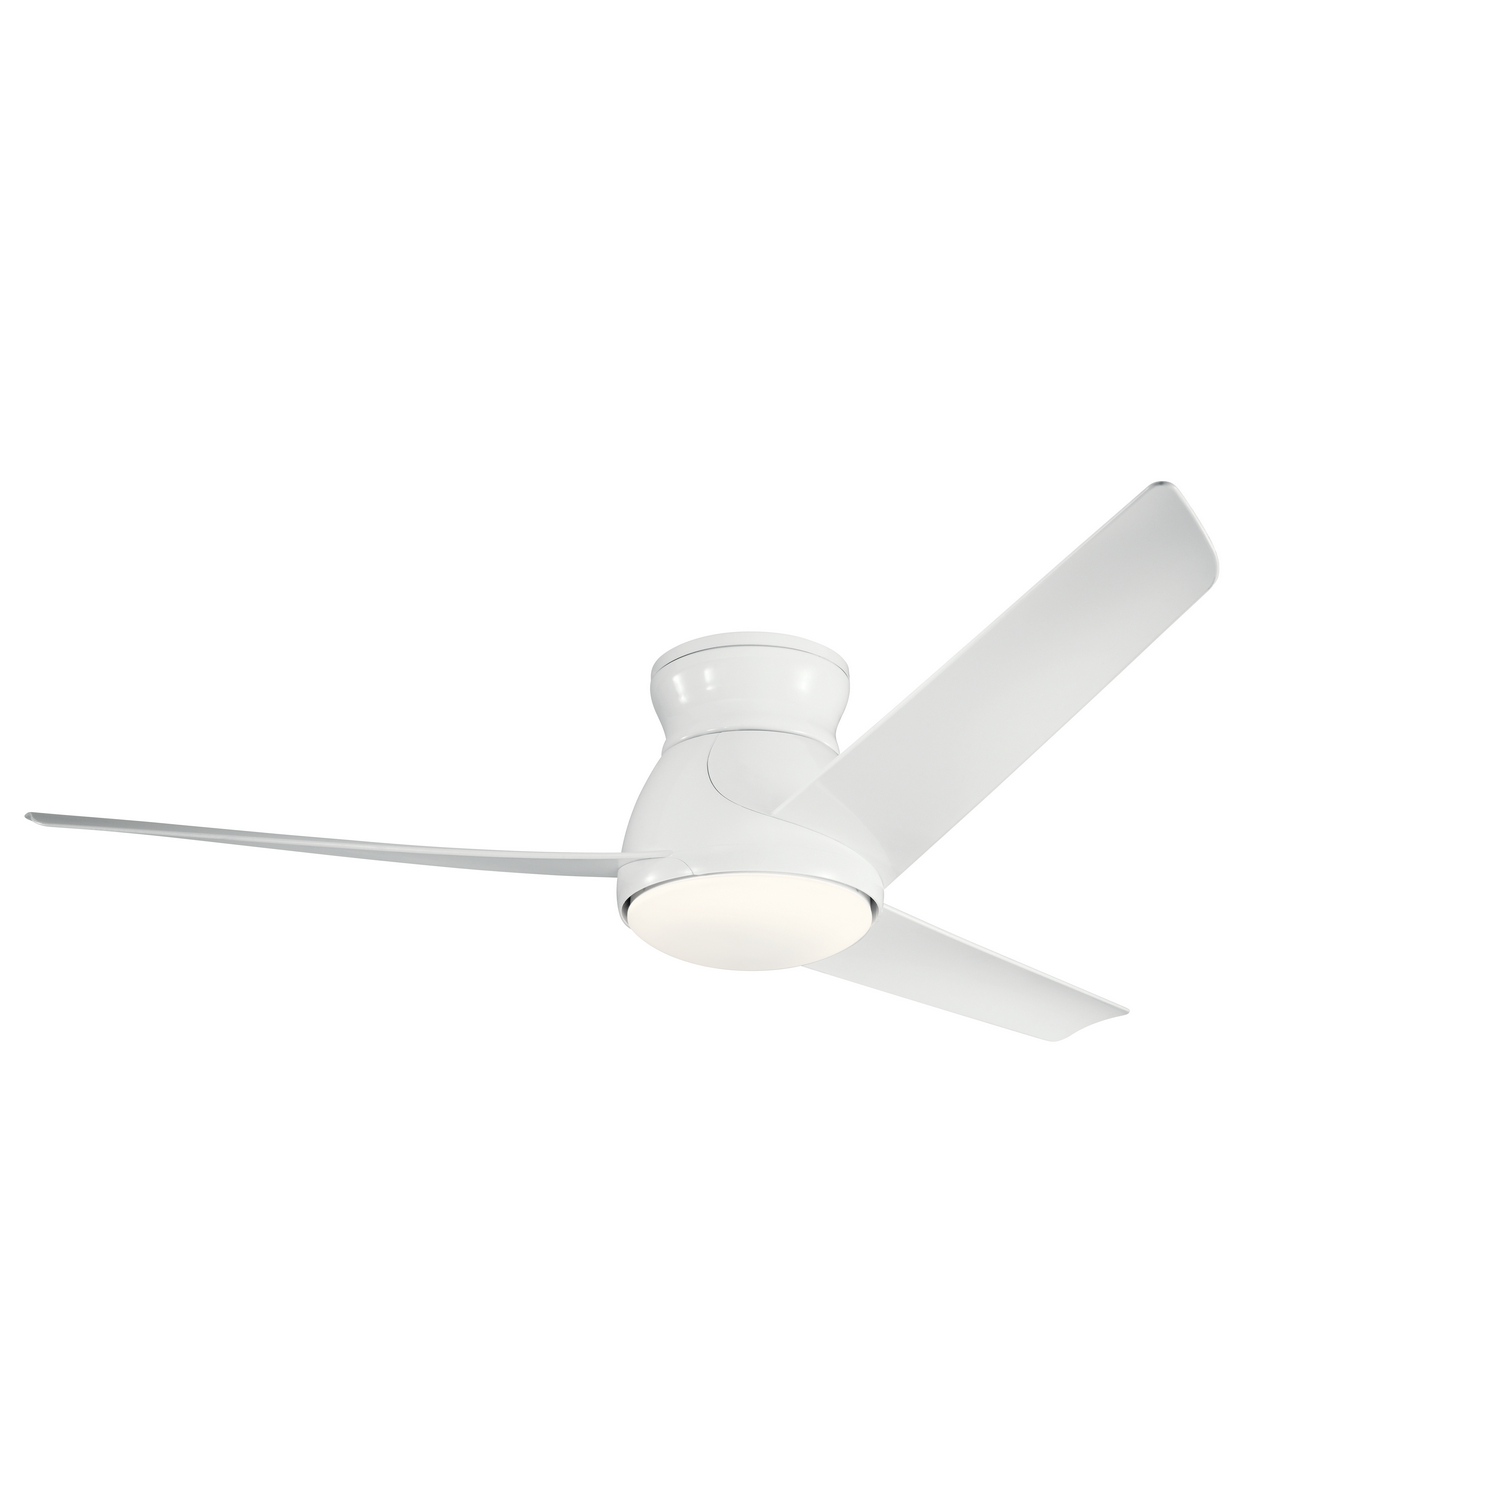 60 inchCeiling Fan from the Eris collection by Kichler 310160WH